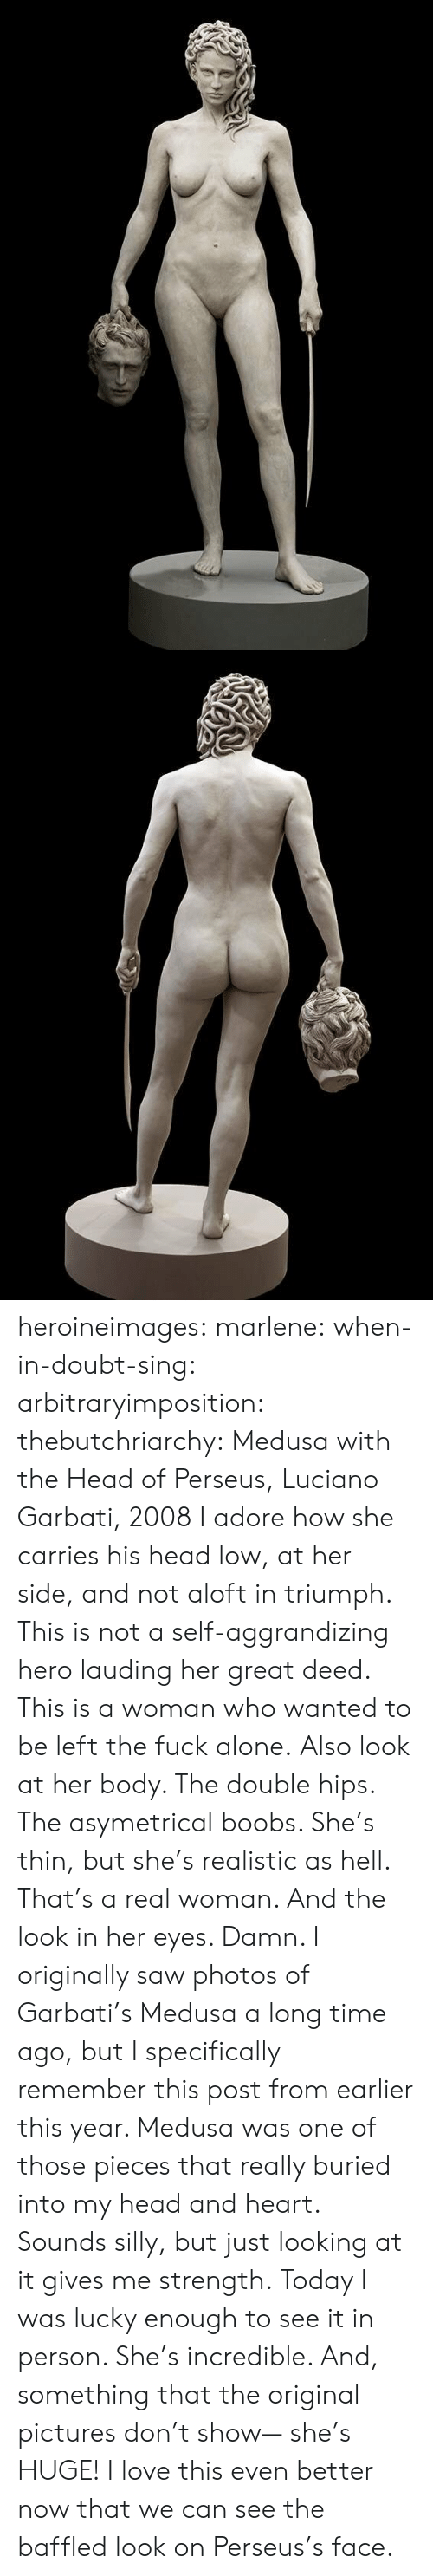 realistic: heroineimages:  marlene:  when-in-doubt-sing:  arbitraryimposition:  thebutchriarchy: Medusa with the Head of Perseus, Luciano Garbati, 2008 I adore how she carries his head low, at her side, and not aloft in triumph.  This is not a self-aggrandizing hero lauding her great deed. This is a woman who wanted to be left the fuck alone.   Also look at her body. The double hips. The asymetrical boobs. She's thin, but she's realistic as hell. That's a real woman.  And the look in her eyes. Damn.   I originally saw photos of Garbati's Medusa a long time ago, but I specifically remember this post from earlier this year. Medusa was one of those pieces that really buried into my head and heart. Sounds silly, but just looking at it gives me strength. Today I was lucky enough to see it in person. She's incredible. And, something that the original pictures don't show— she's HUGE!    I love this even better now that we can see the baffled look on Perseus's face.